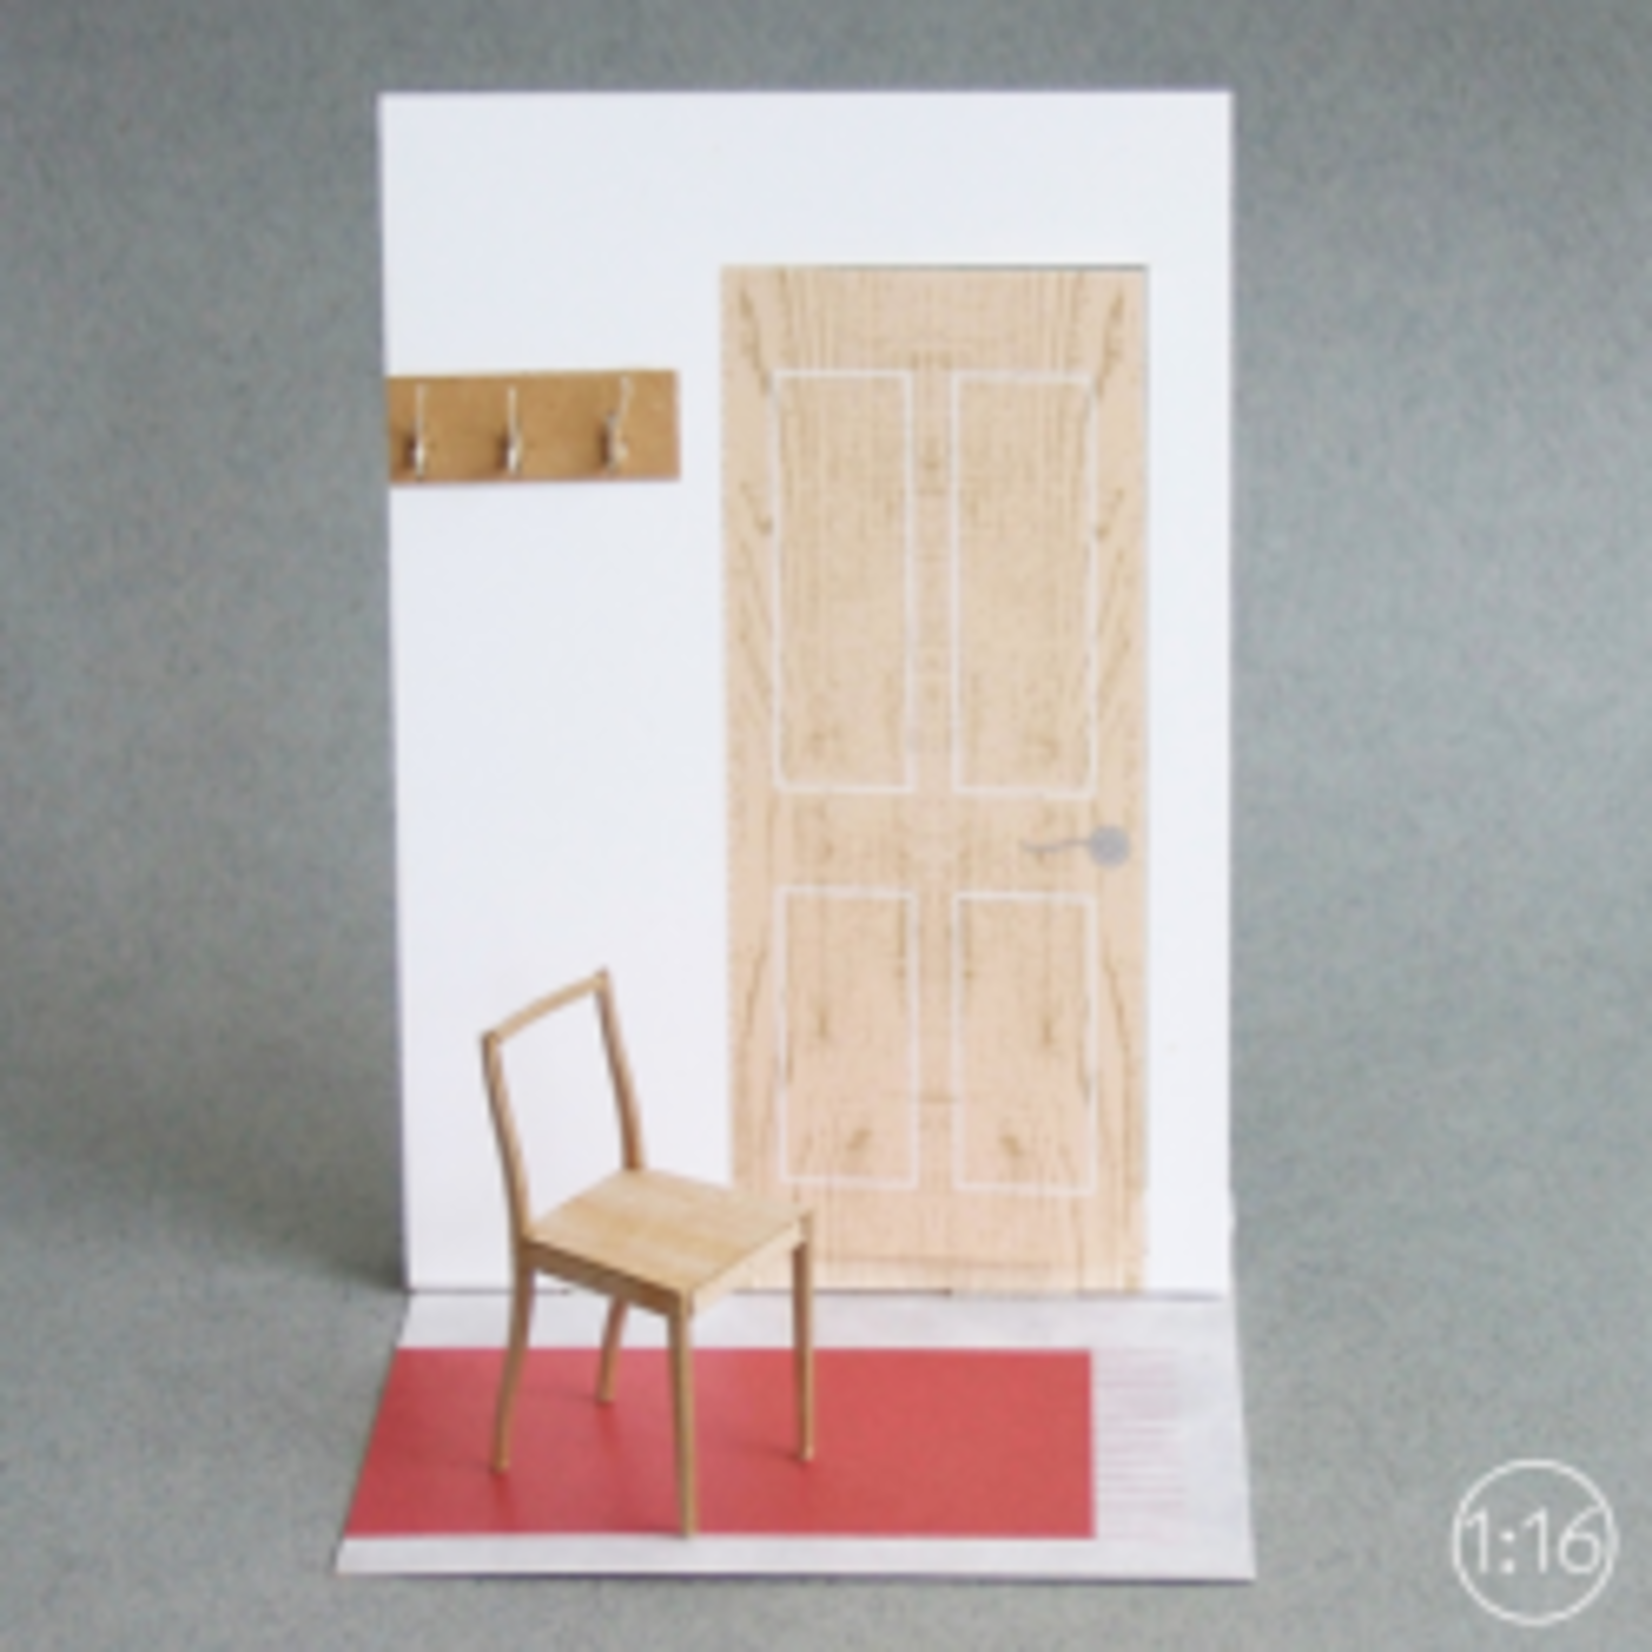 Based on Roots Plywood chair